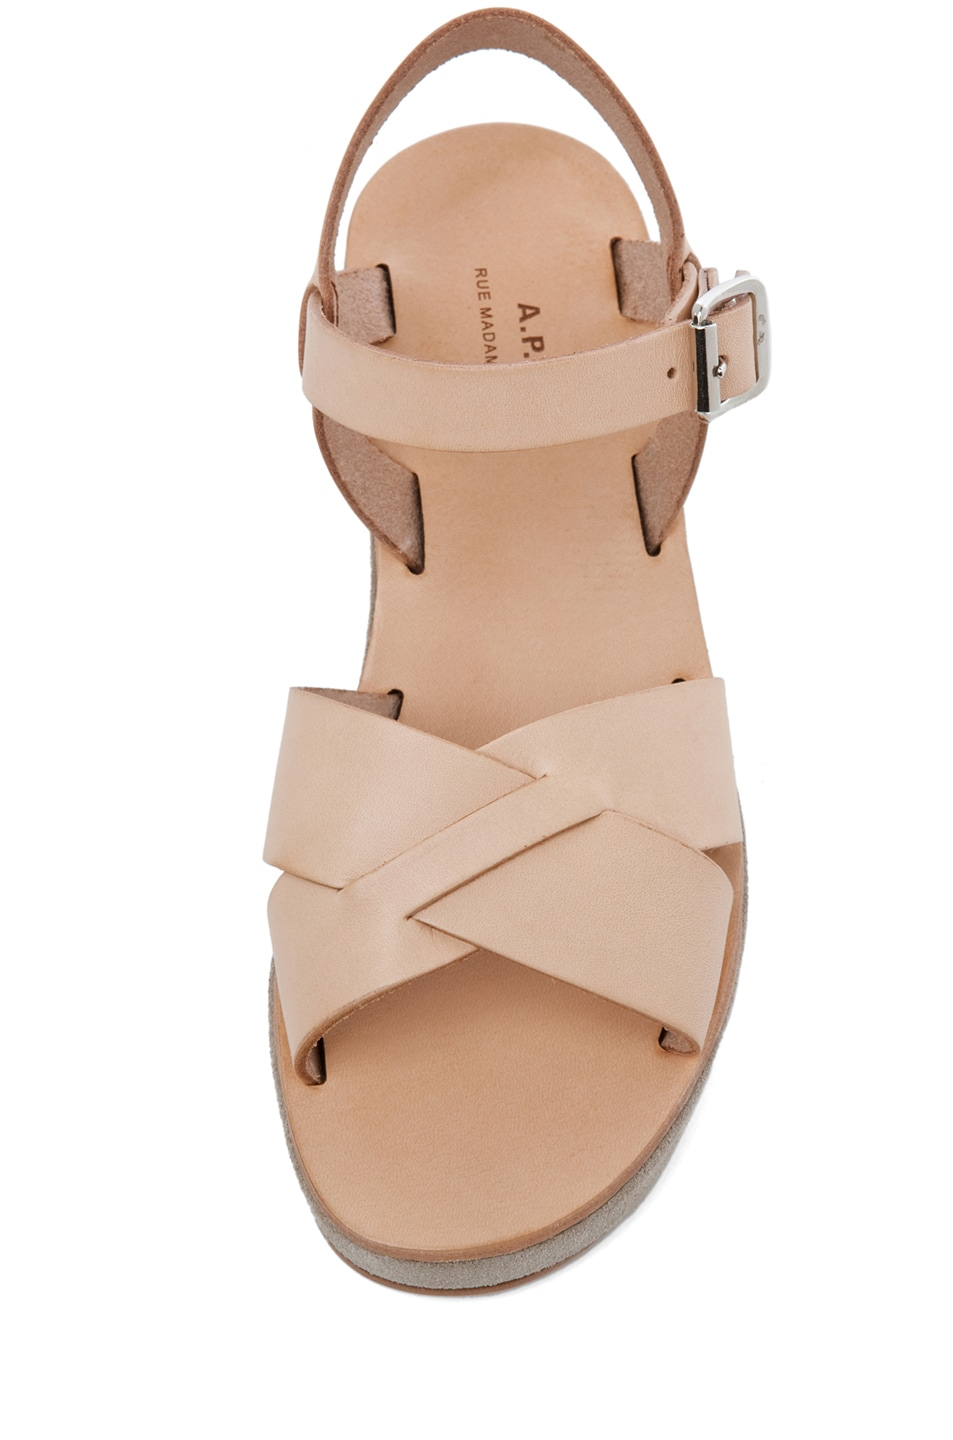 Image 4 of A.P.C. Criss Cros Wedge Sandal in Beige Naturel